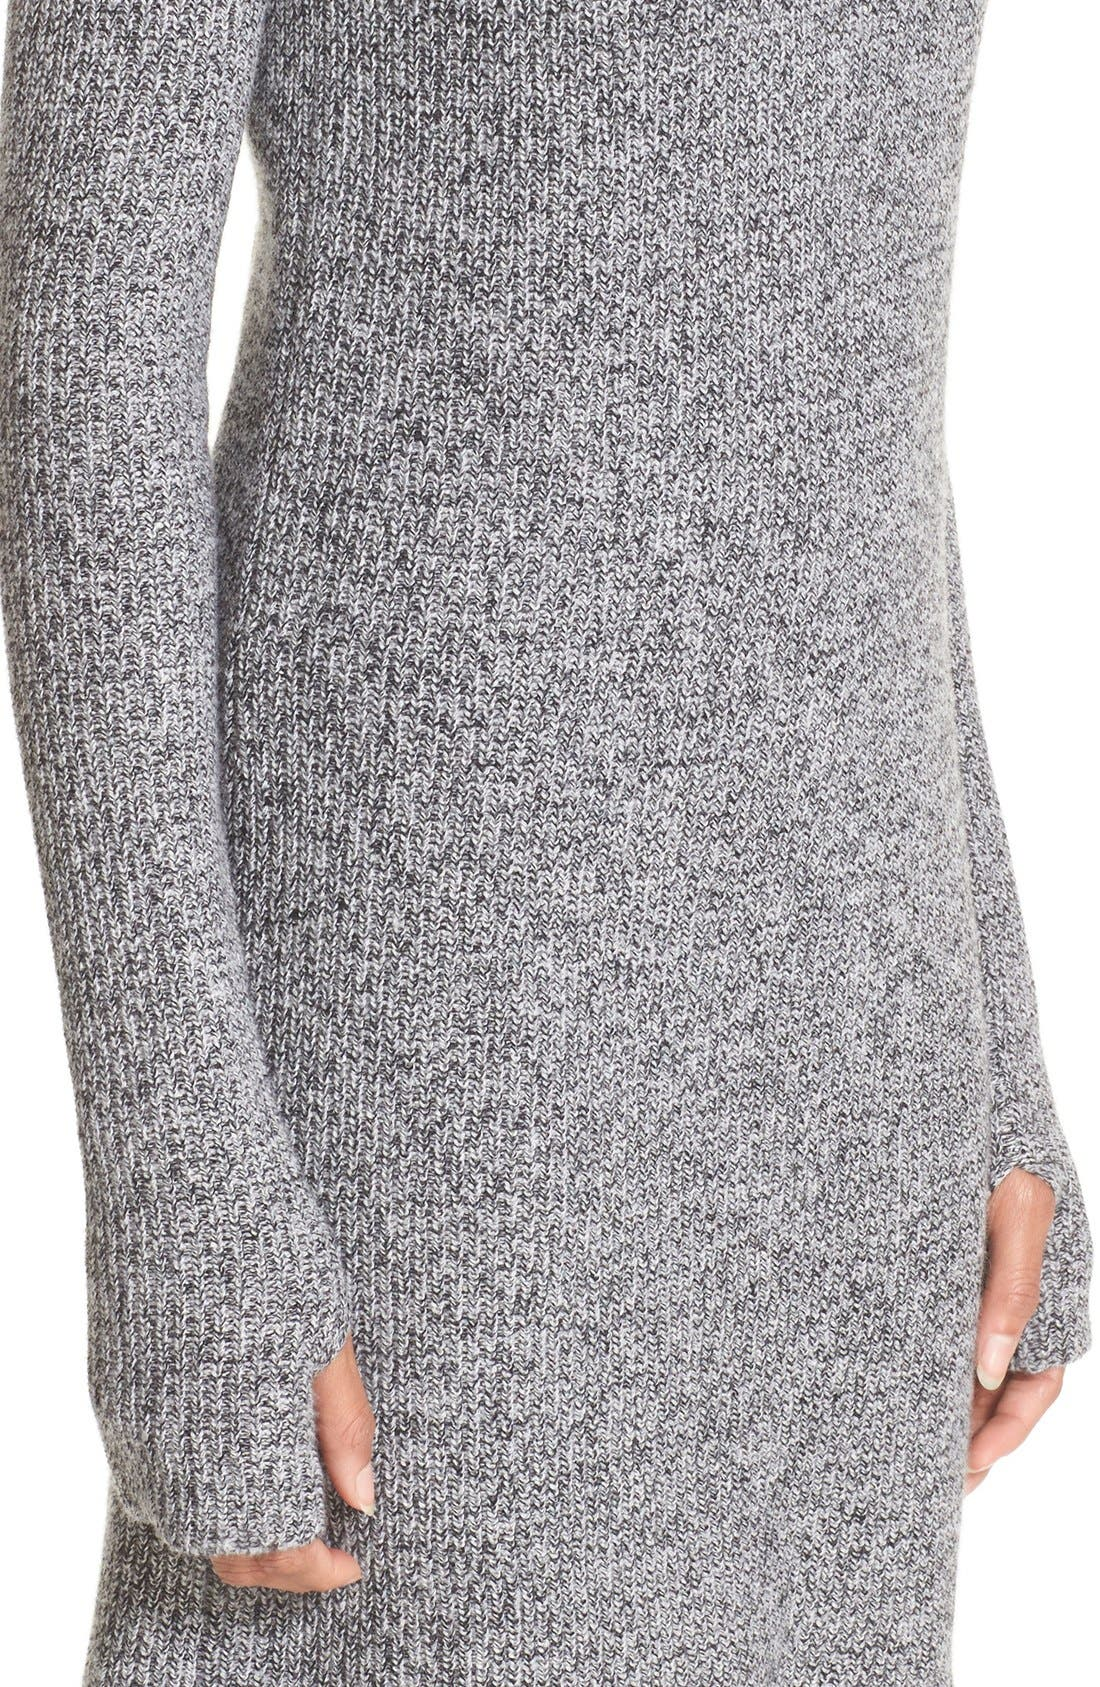 Alternate Image 4  - Current/Elliott 'The Easy Sweater' Wool & Cashmere Sweater Dress